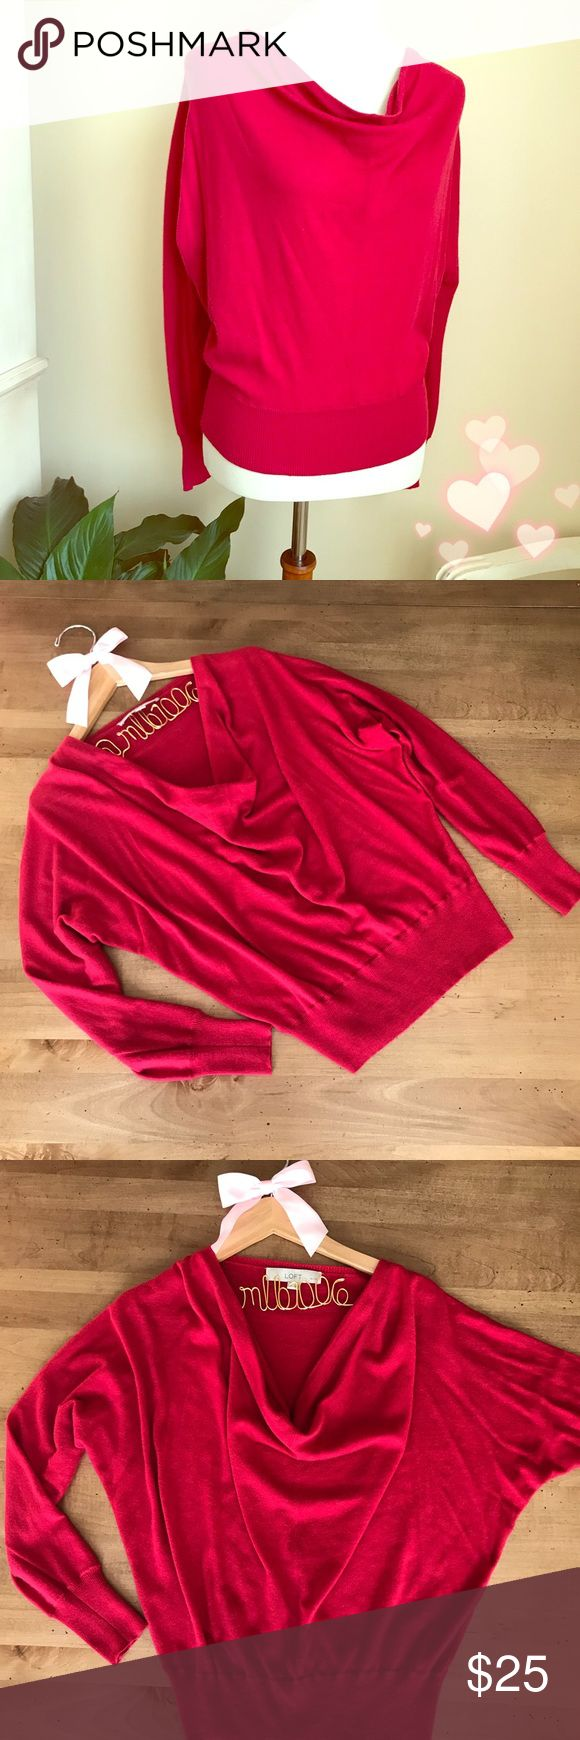 ❤️Anne Taylor LOFT Cowl Neck Red Sweater Anne Taylor LOFT Cowl Neck Red Sweater with Dolman sleeves. EUC. Perfect for Valentine's Day! ❤️❤️❤️ LOFT Sweaters Cowl & Turtlenecks